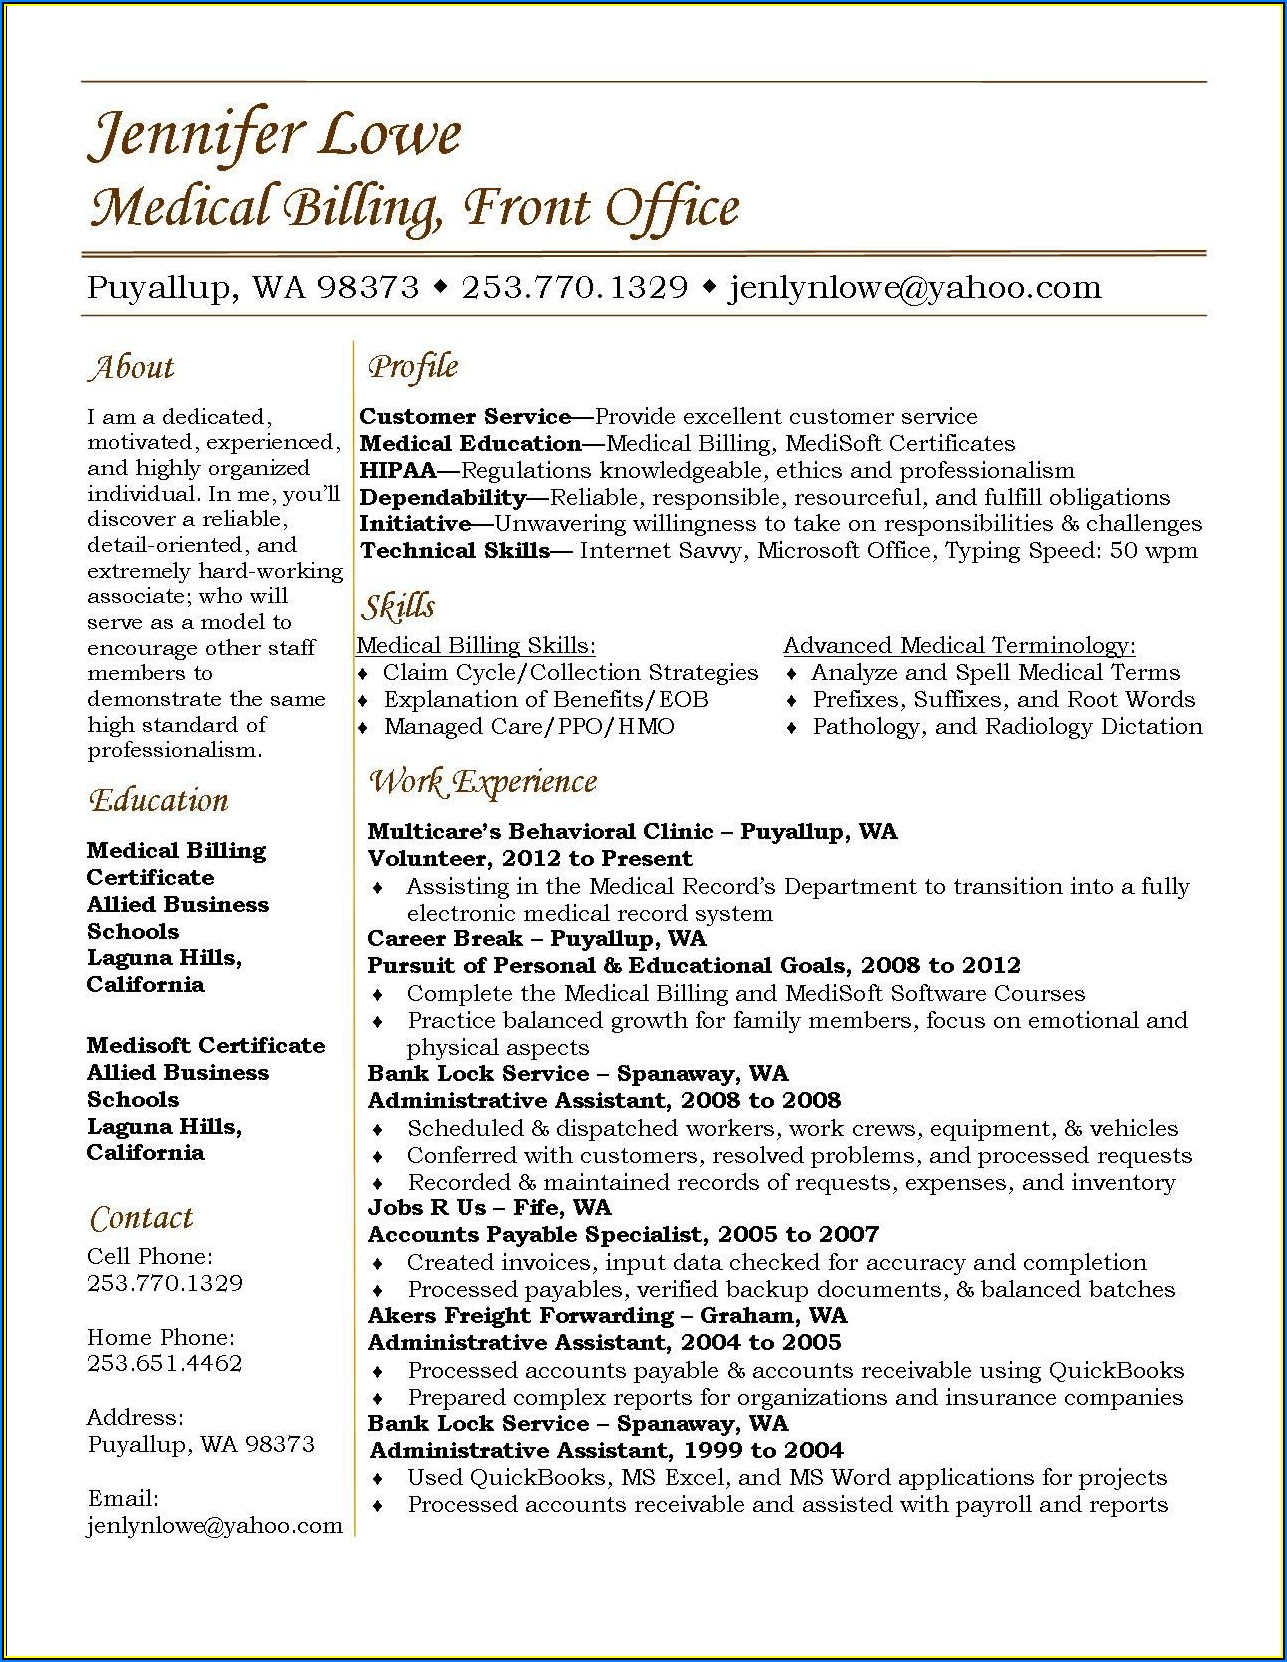 Sample Resume For Entry Level Medical Billing And Coding